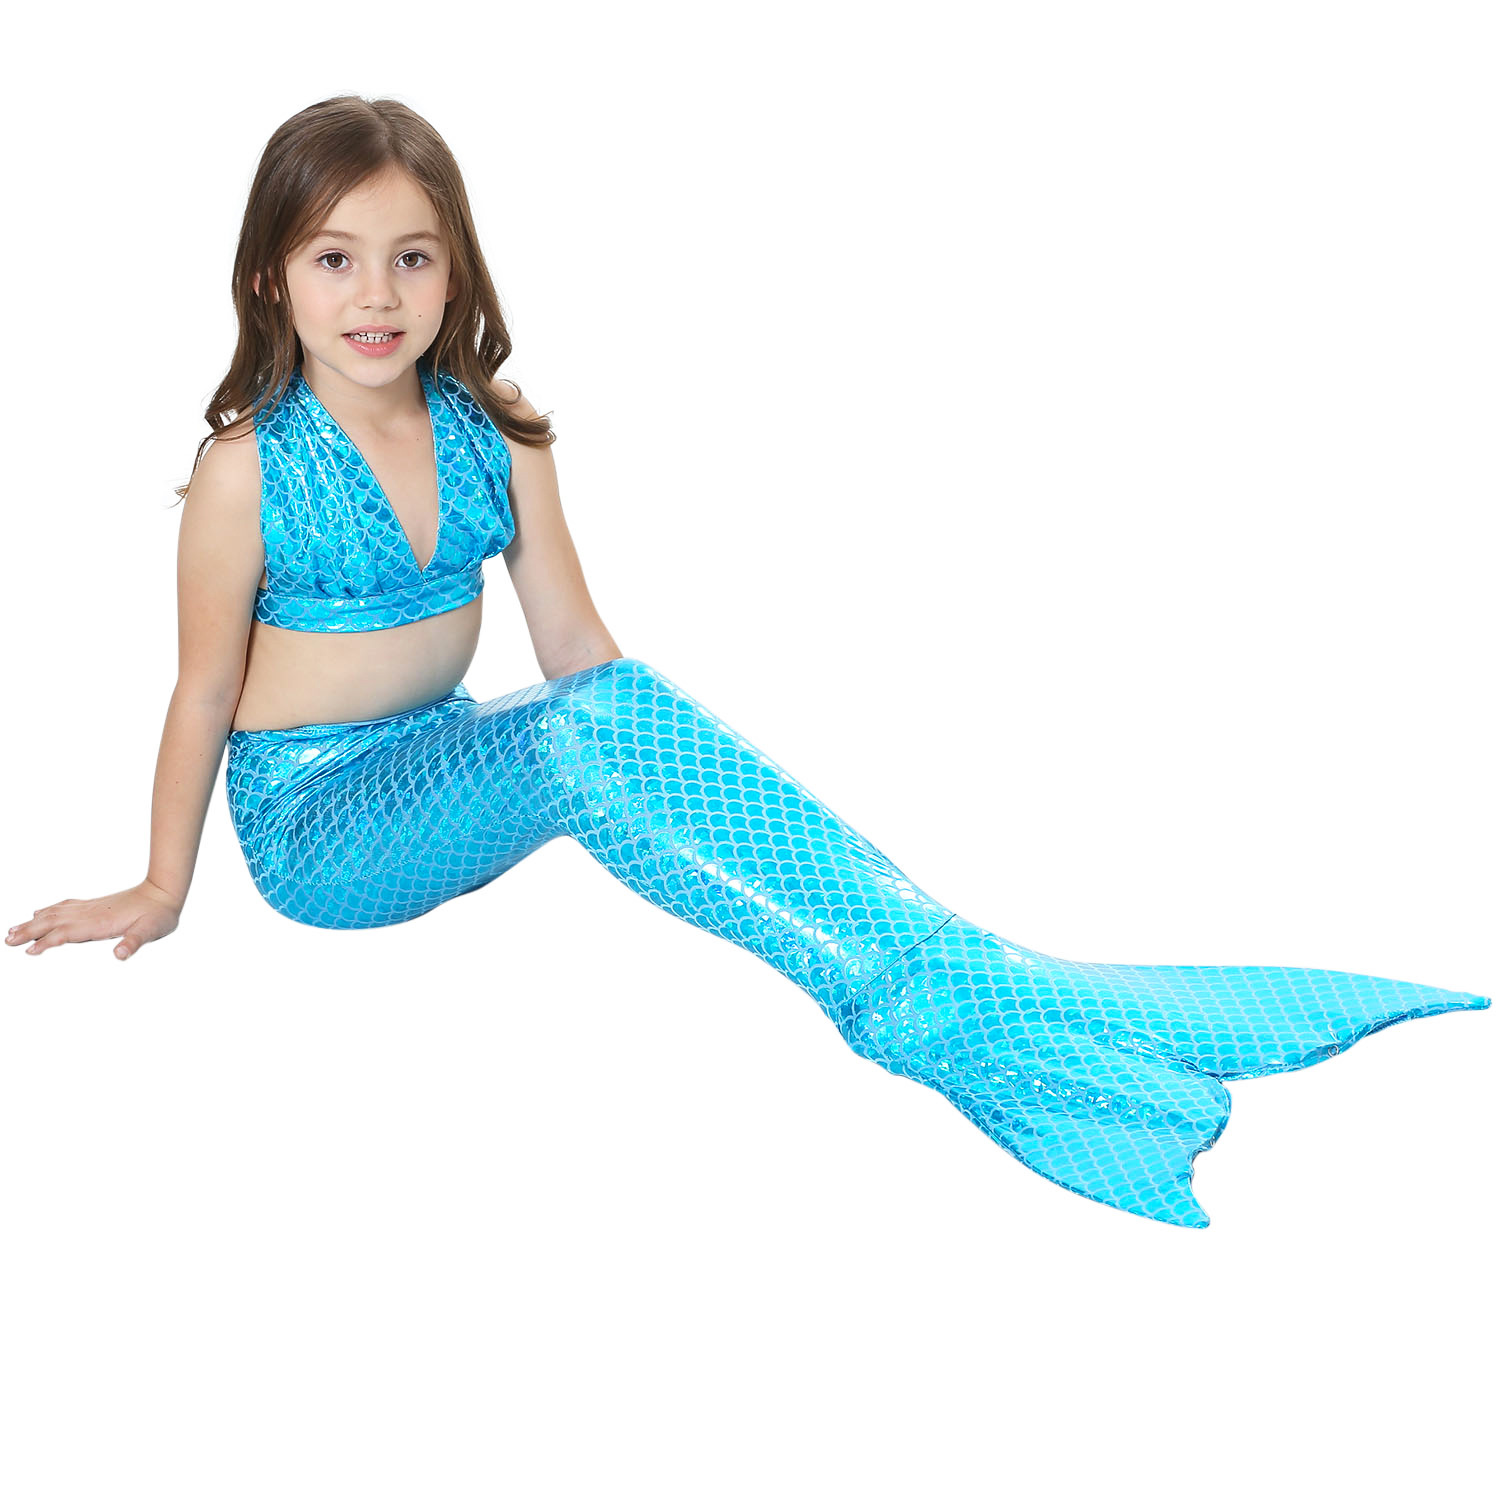 Wear Tails Mermaid discount